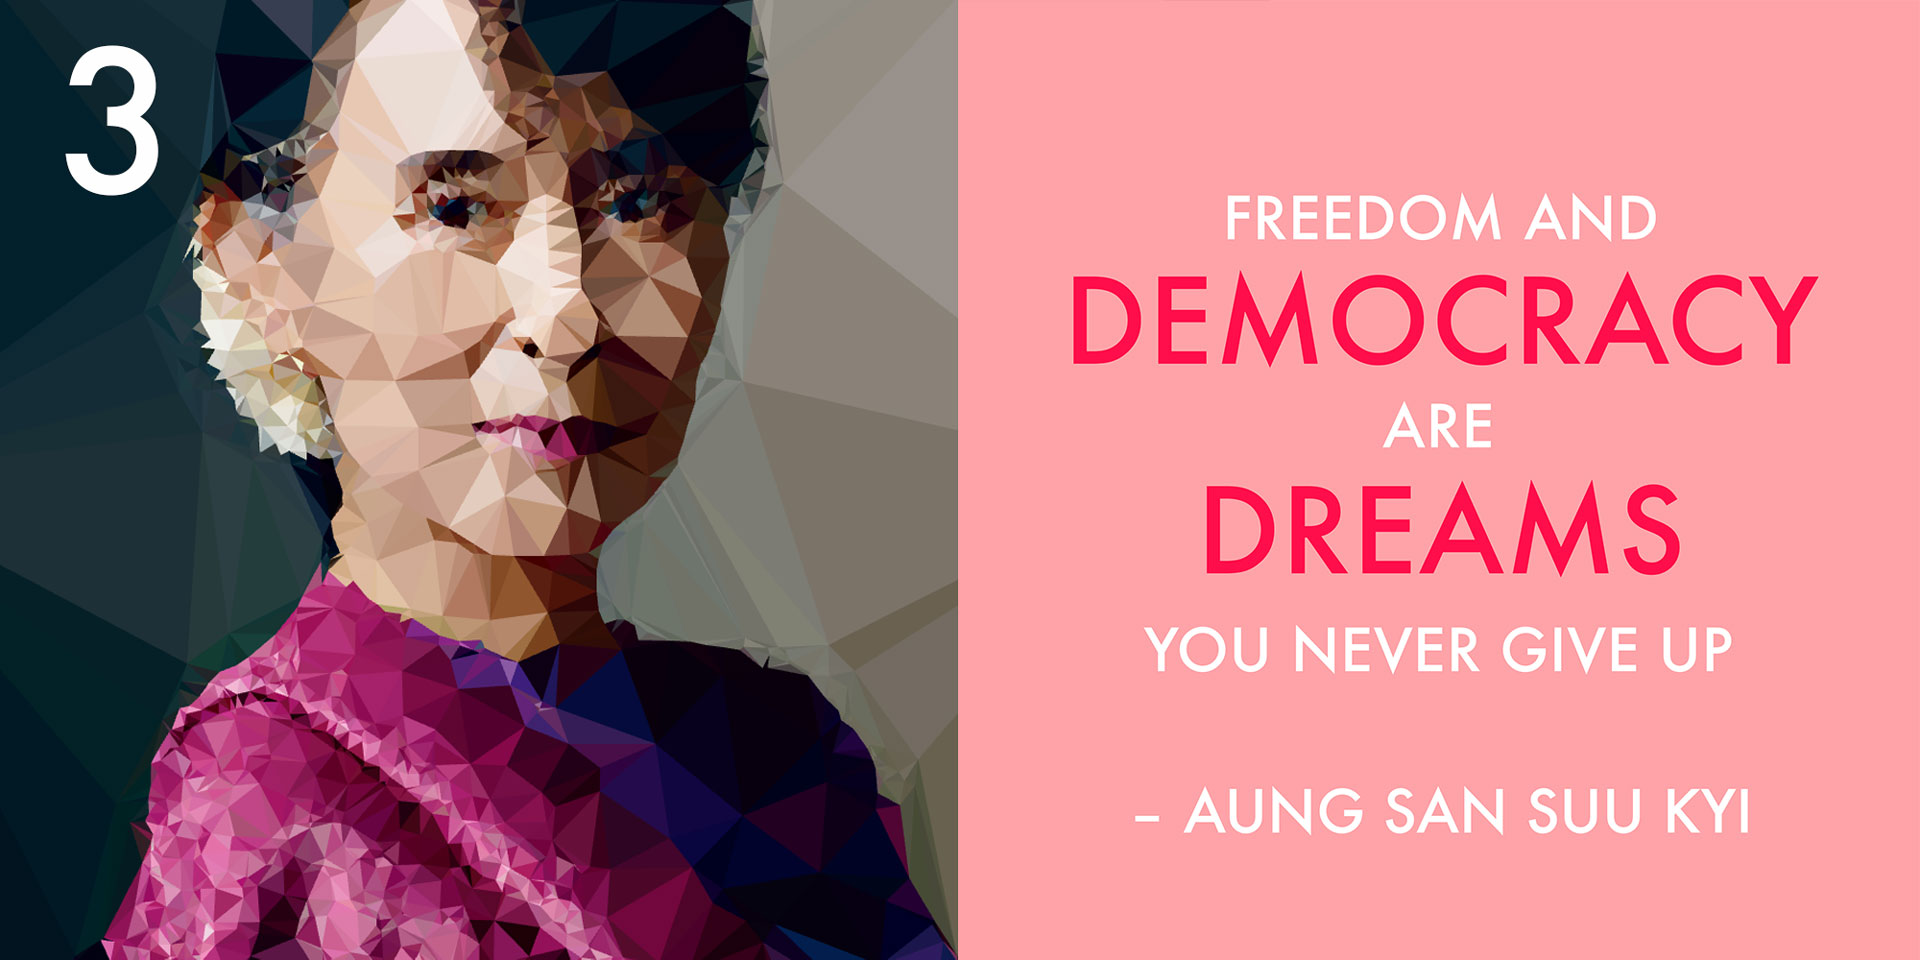 Aung San Suu Kyi Quote